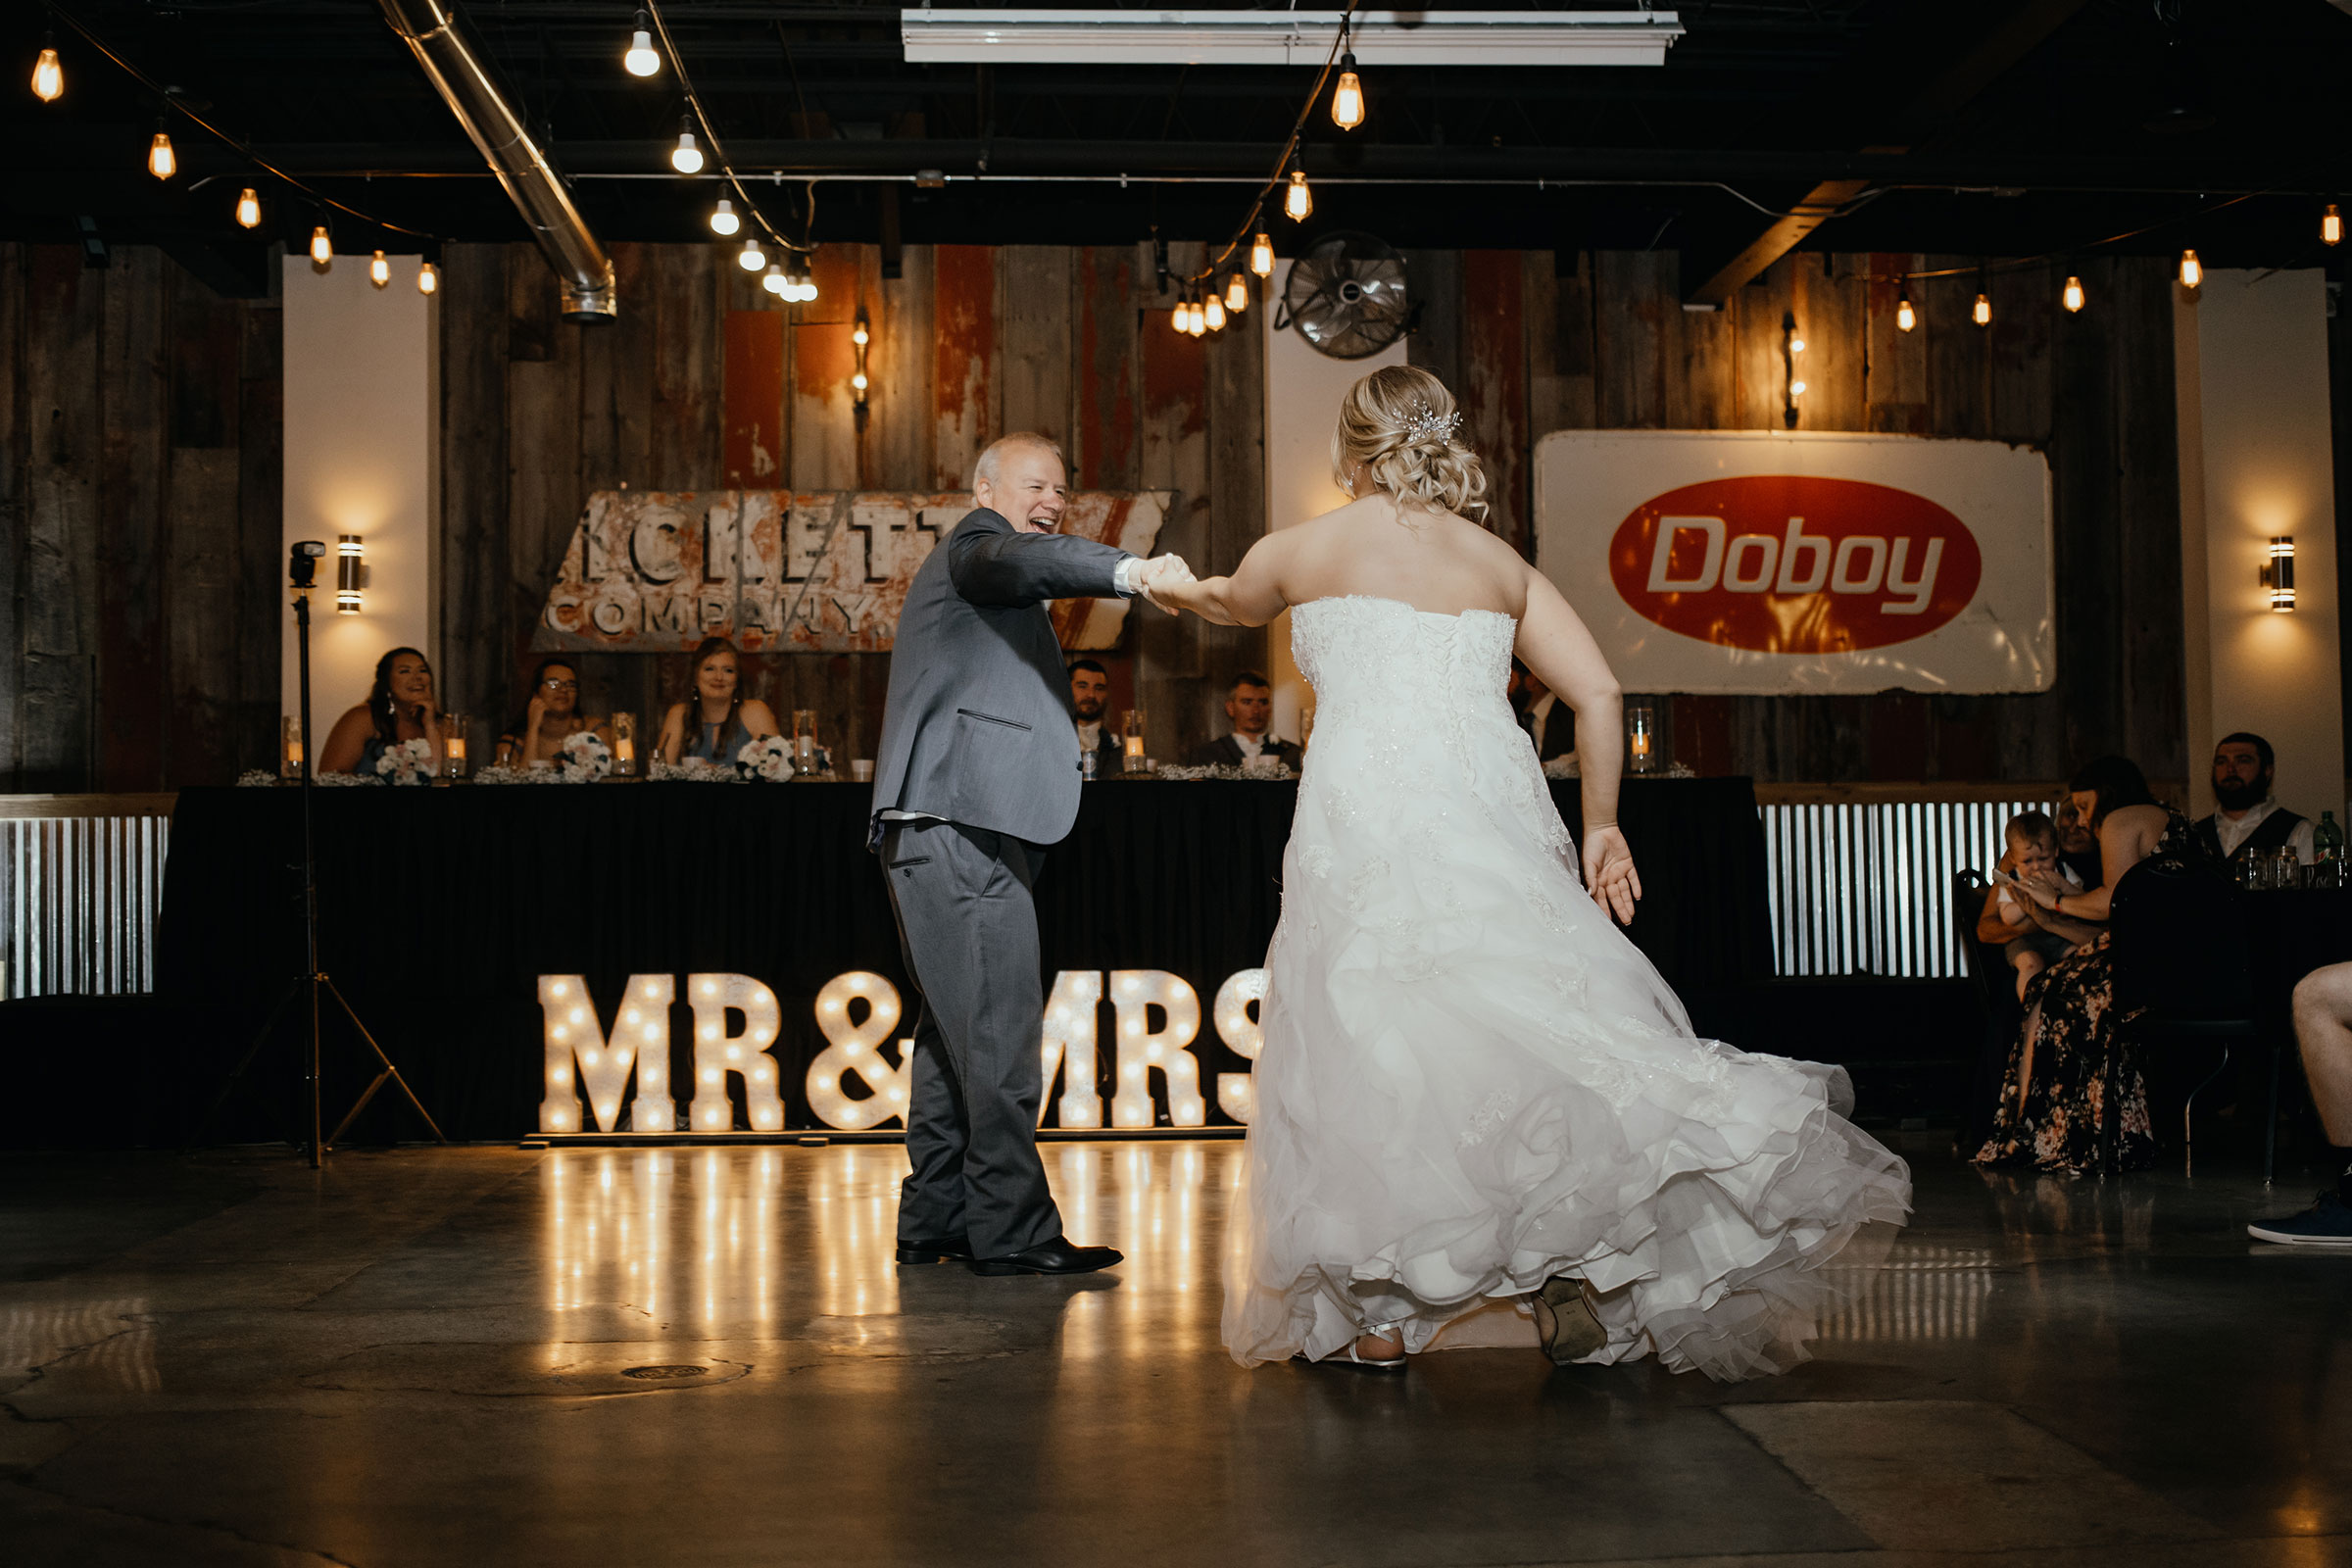 bride-dancing-father-decades-event-center-building-desmoines-iowa-raelyn-ramey-photography..jpg